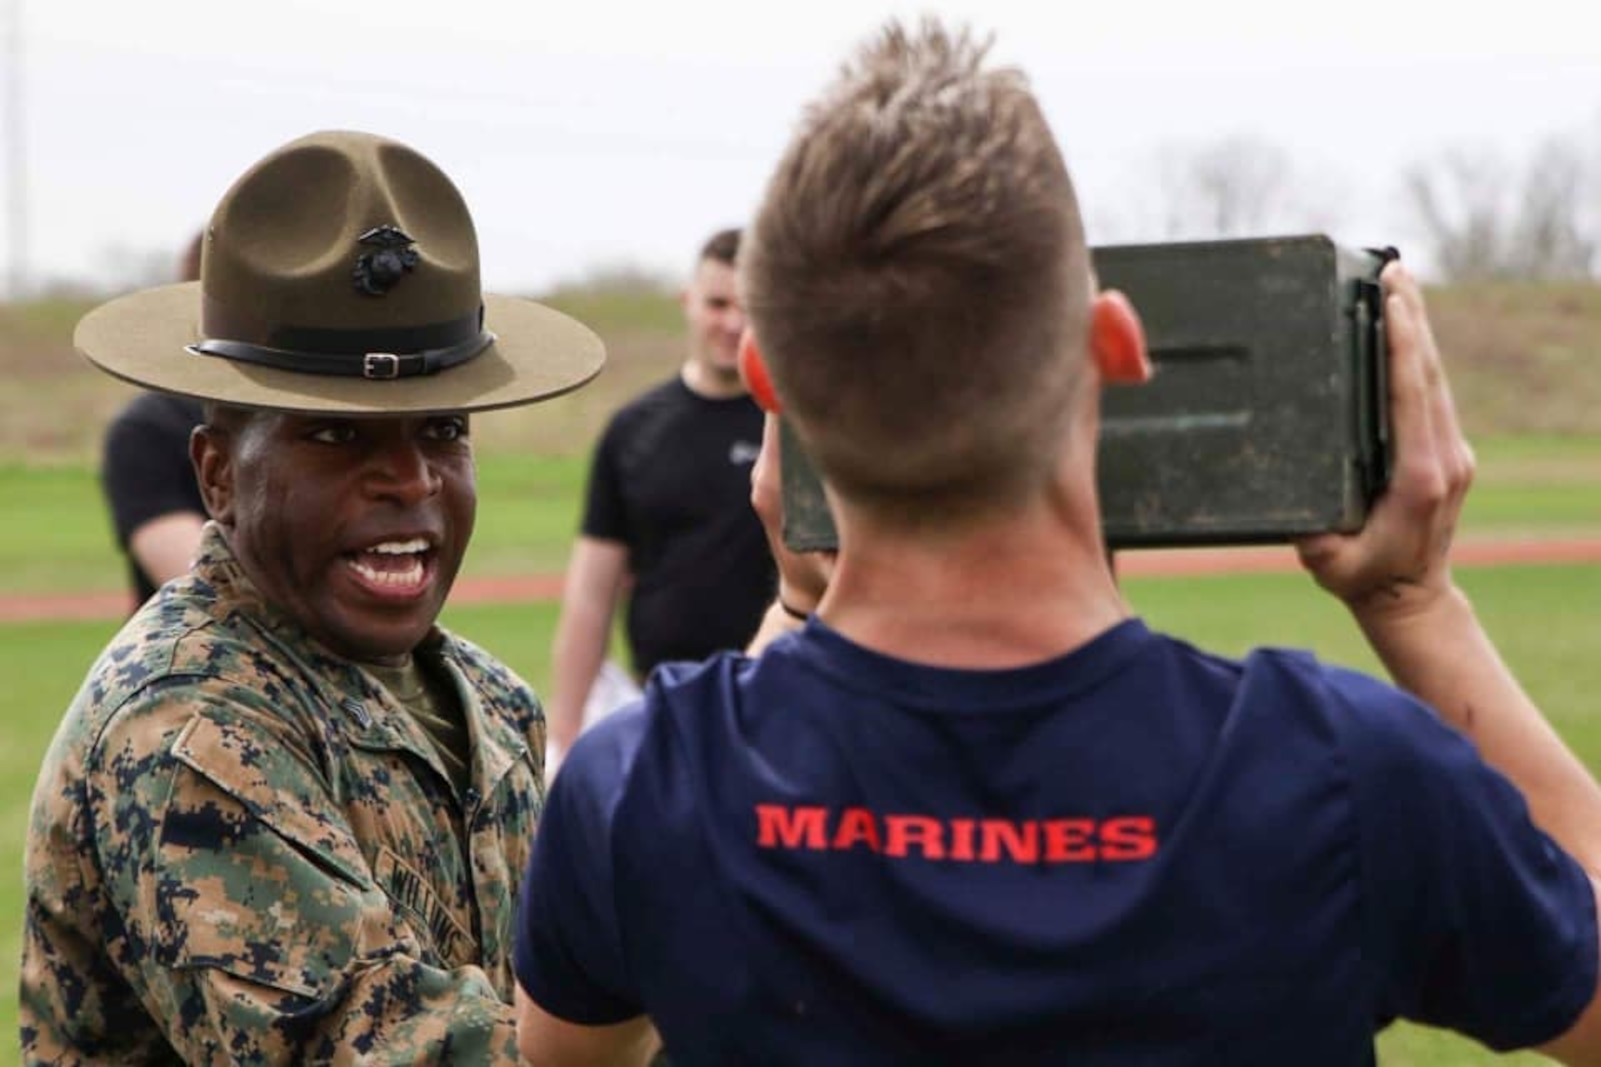 Sergeant Kevin Williams, a drill instructor with Marine Corps Recruit Depot San Diego, California, instructs a poolee how to properly lift ammo cans during the combat fitness test at an all-hands pool function. Recruiting Station Indianapolis hosted the pool function to simulate recruit training, while preparing  the poolees to deal with the stress and high tempo during the 13-week training regimen. (Official U.S. Marine Corps photo by Sgt. Carl King/Released)